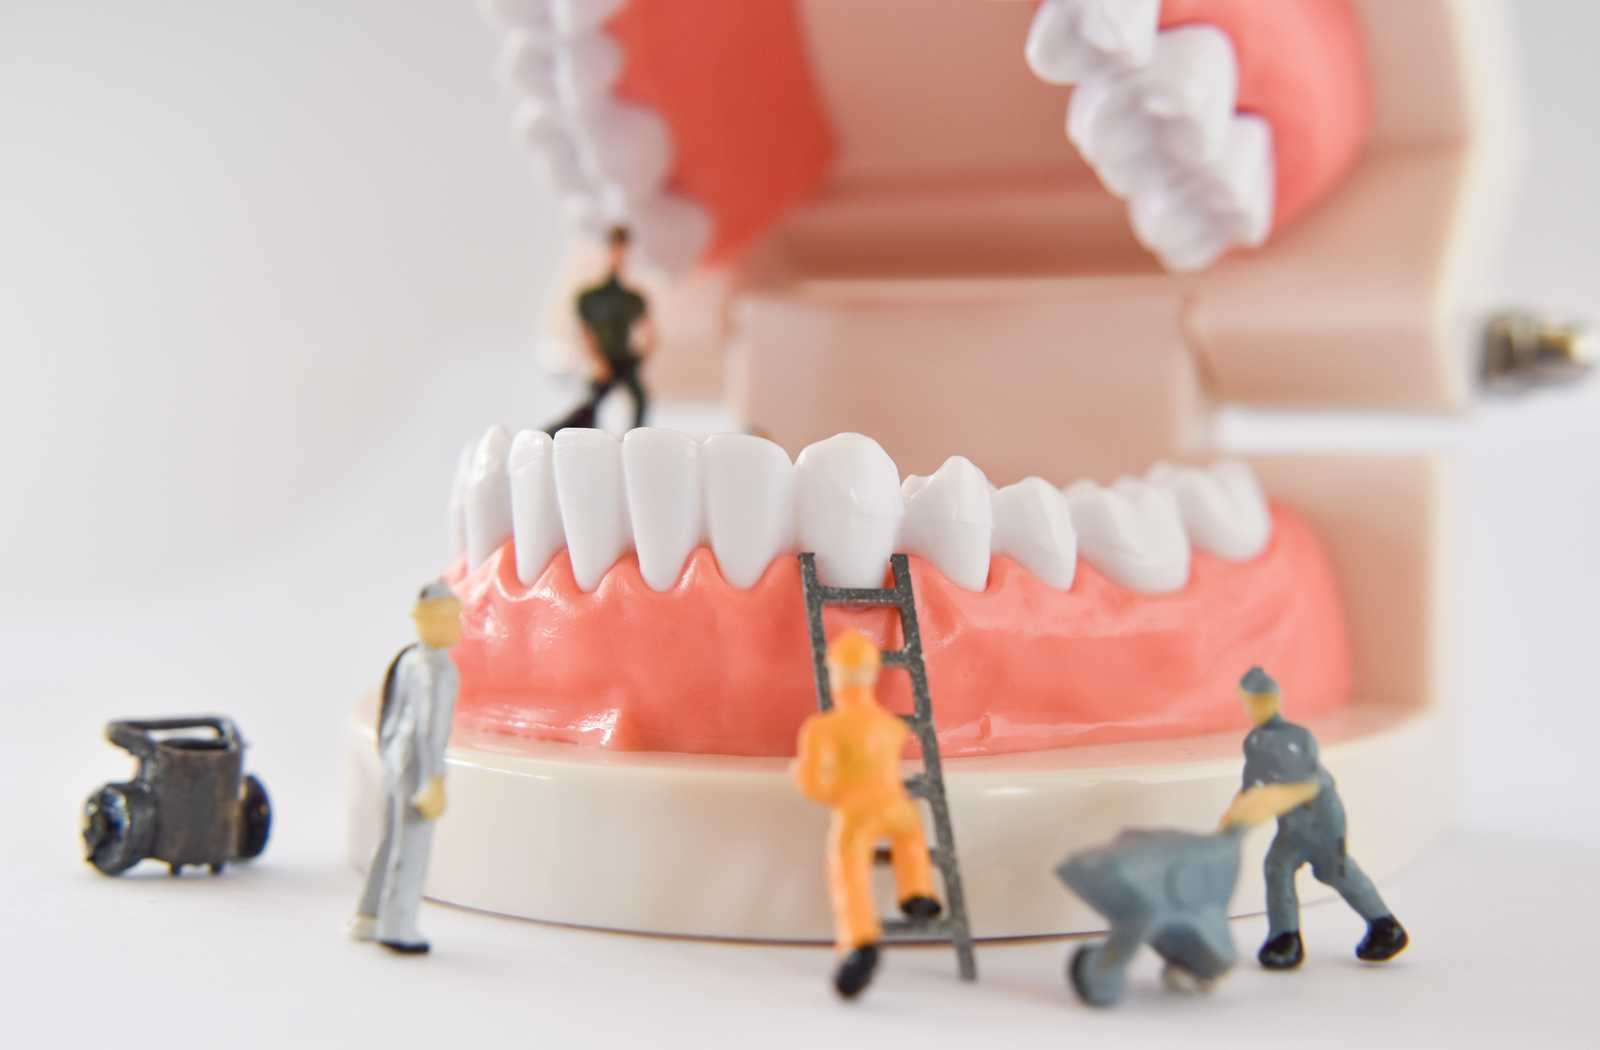 miniature toy workers climbing over and maintaining dentures